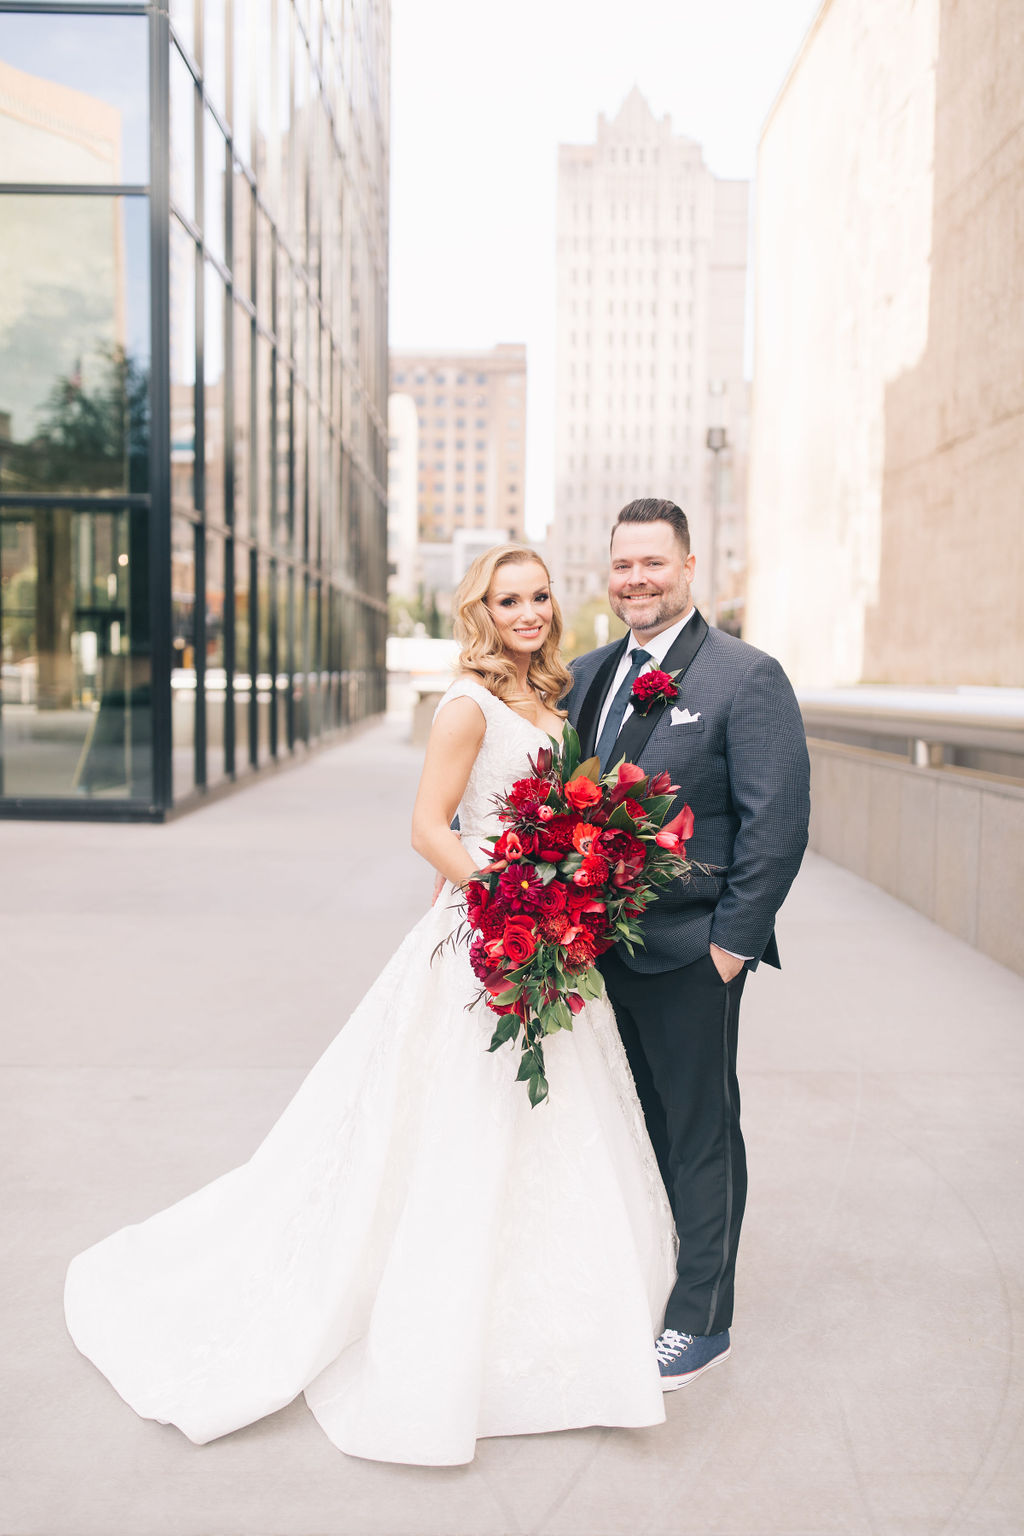 light-and-airy-dallas-fortworth-wedding-photography-bushel-peck17